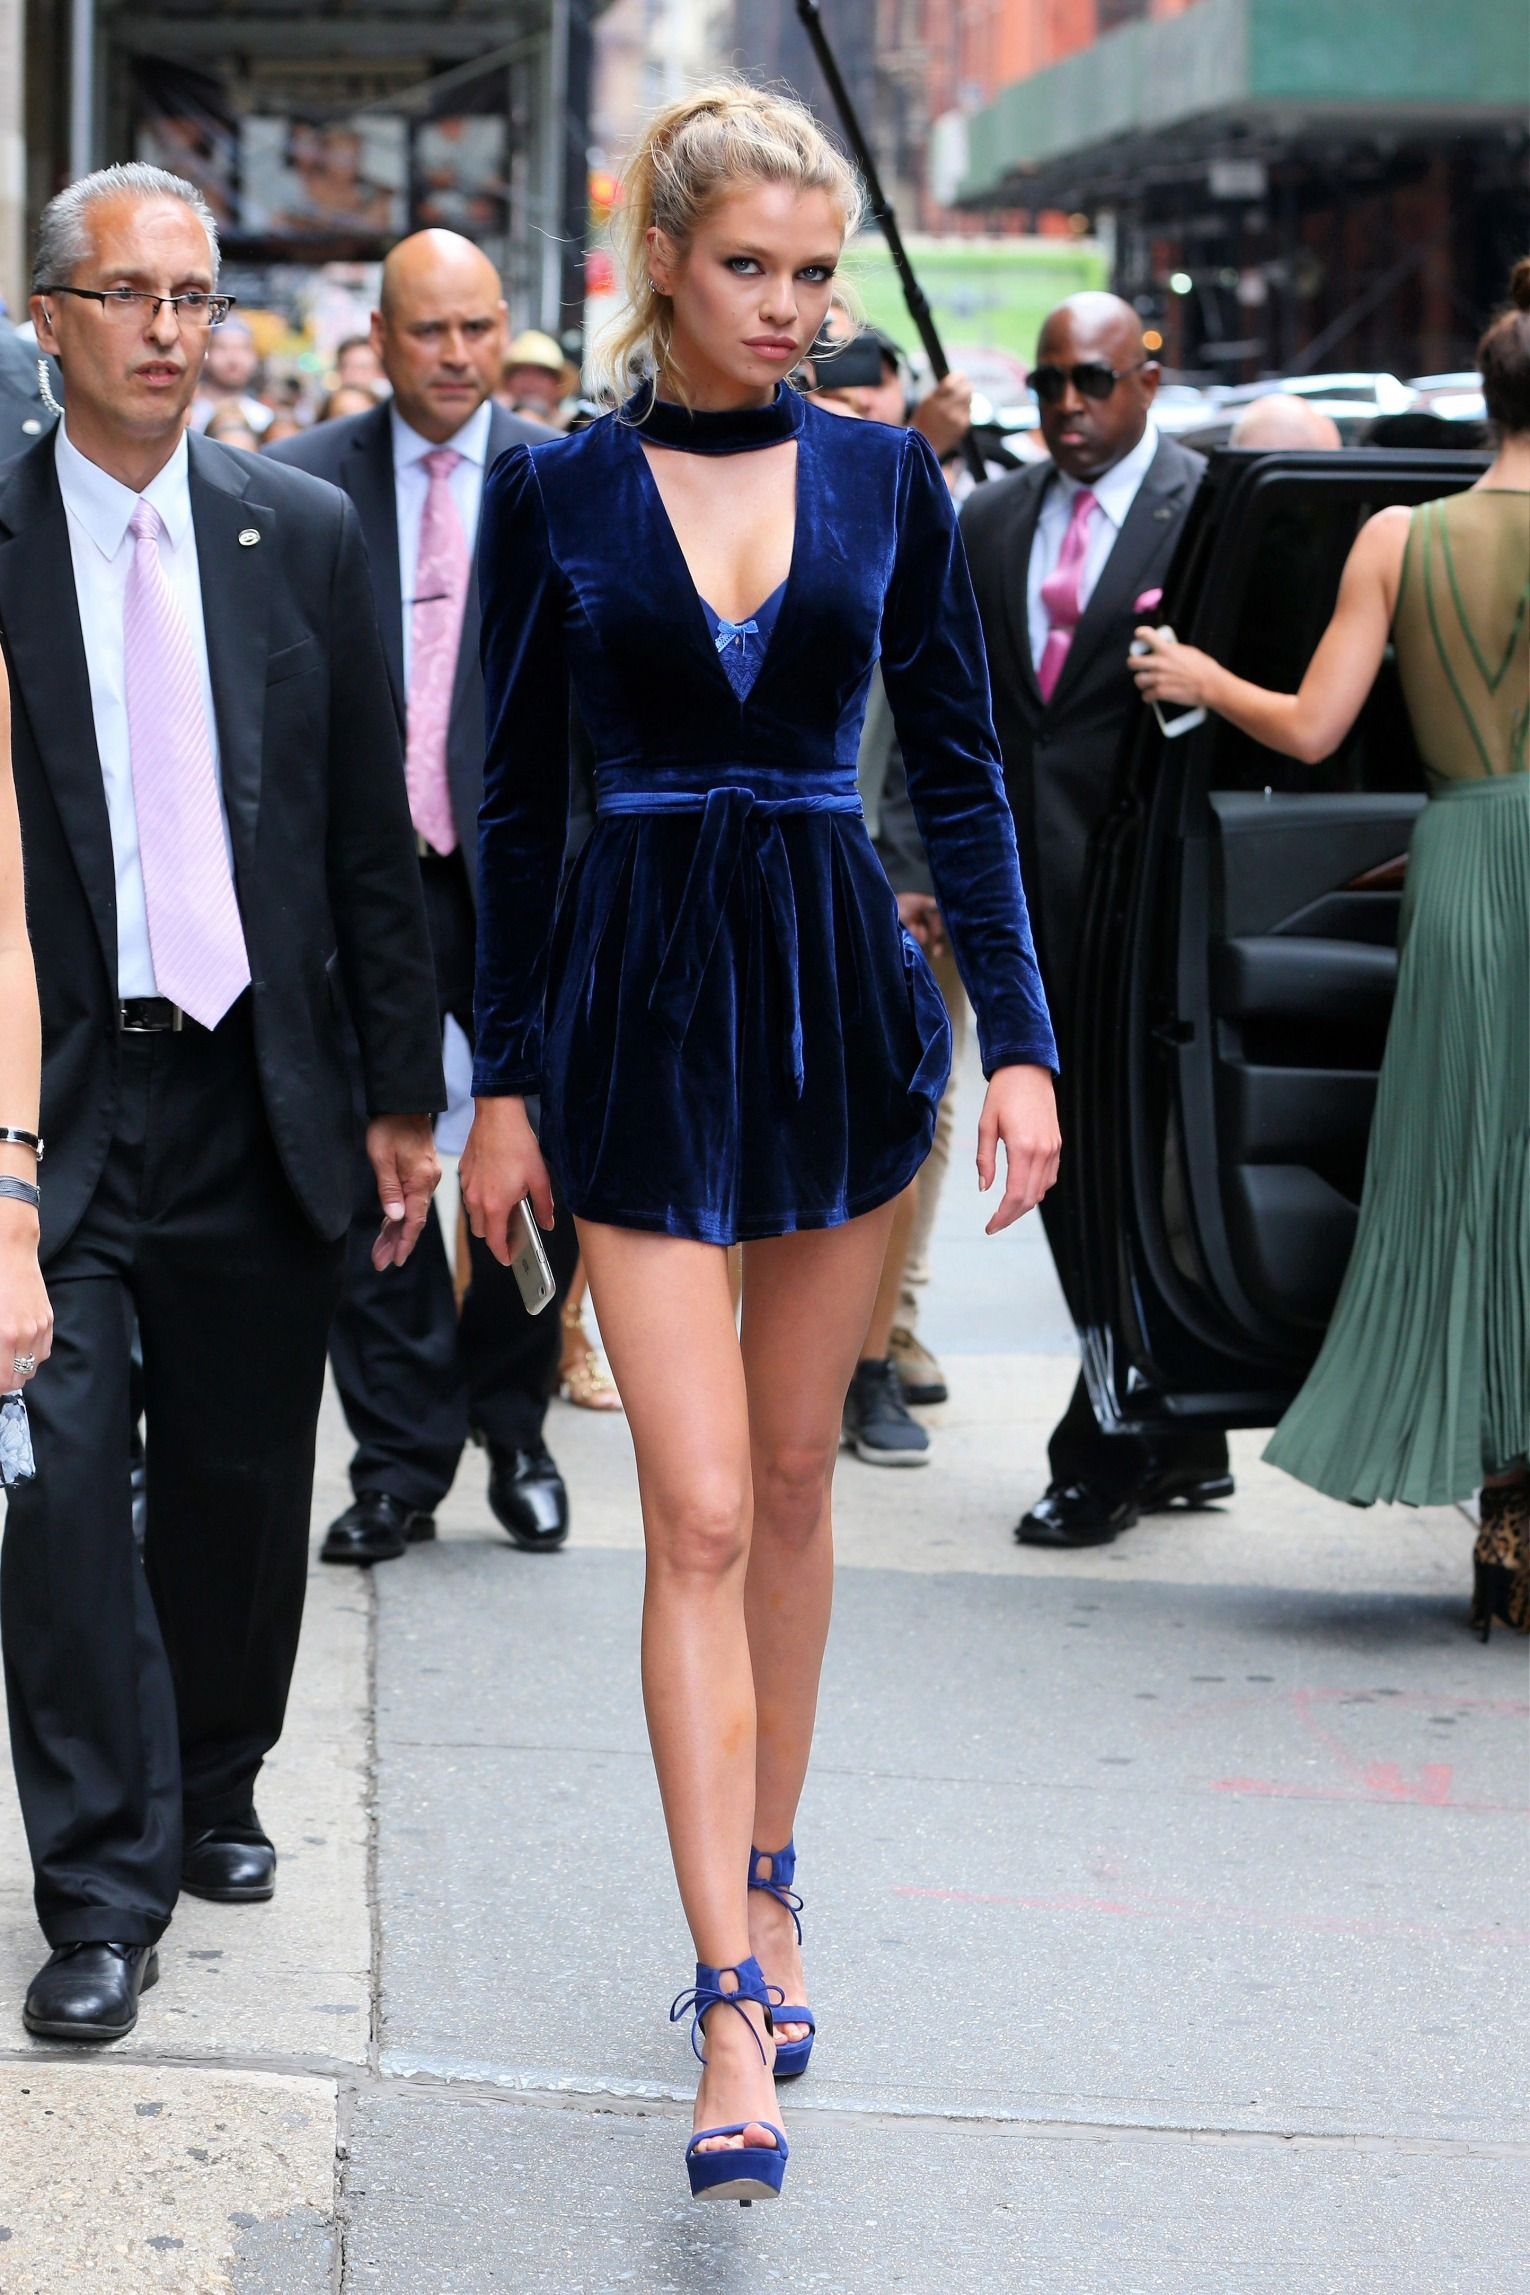 db52367c12d8 Stella Maxwell in a short blue velvet dress with long sleeves and a  plunging neckline.